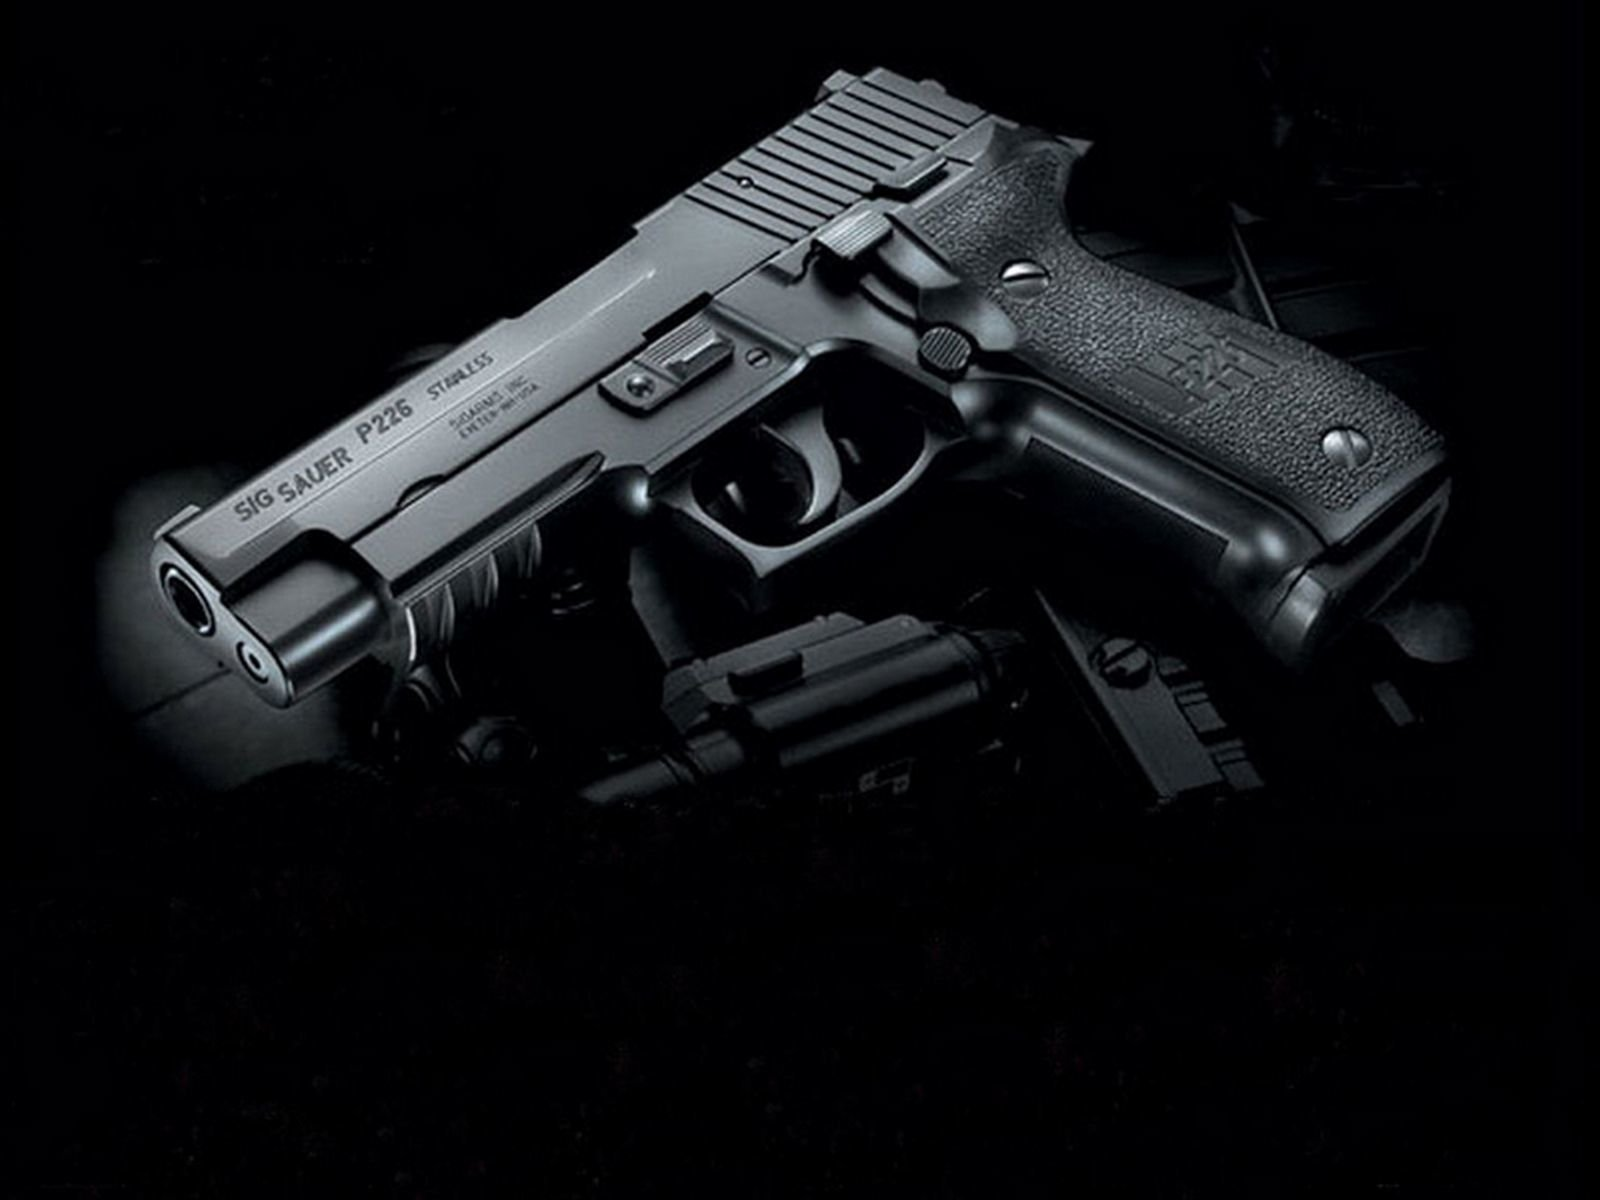 Wallpaper Pistols Sig Sauer P226 Army: Sig Sauer P226 Wallpaper And Background Image